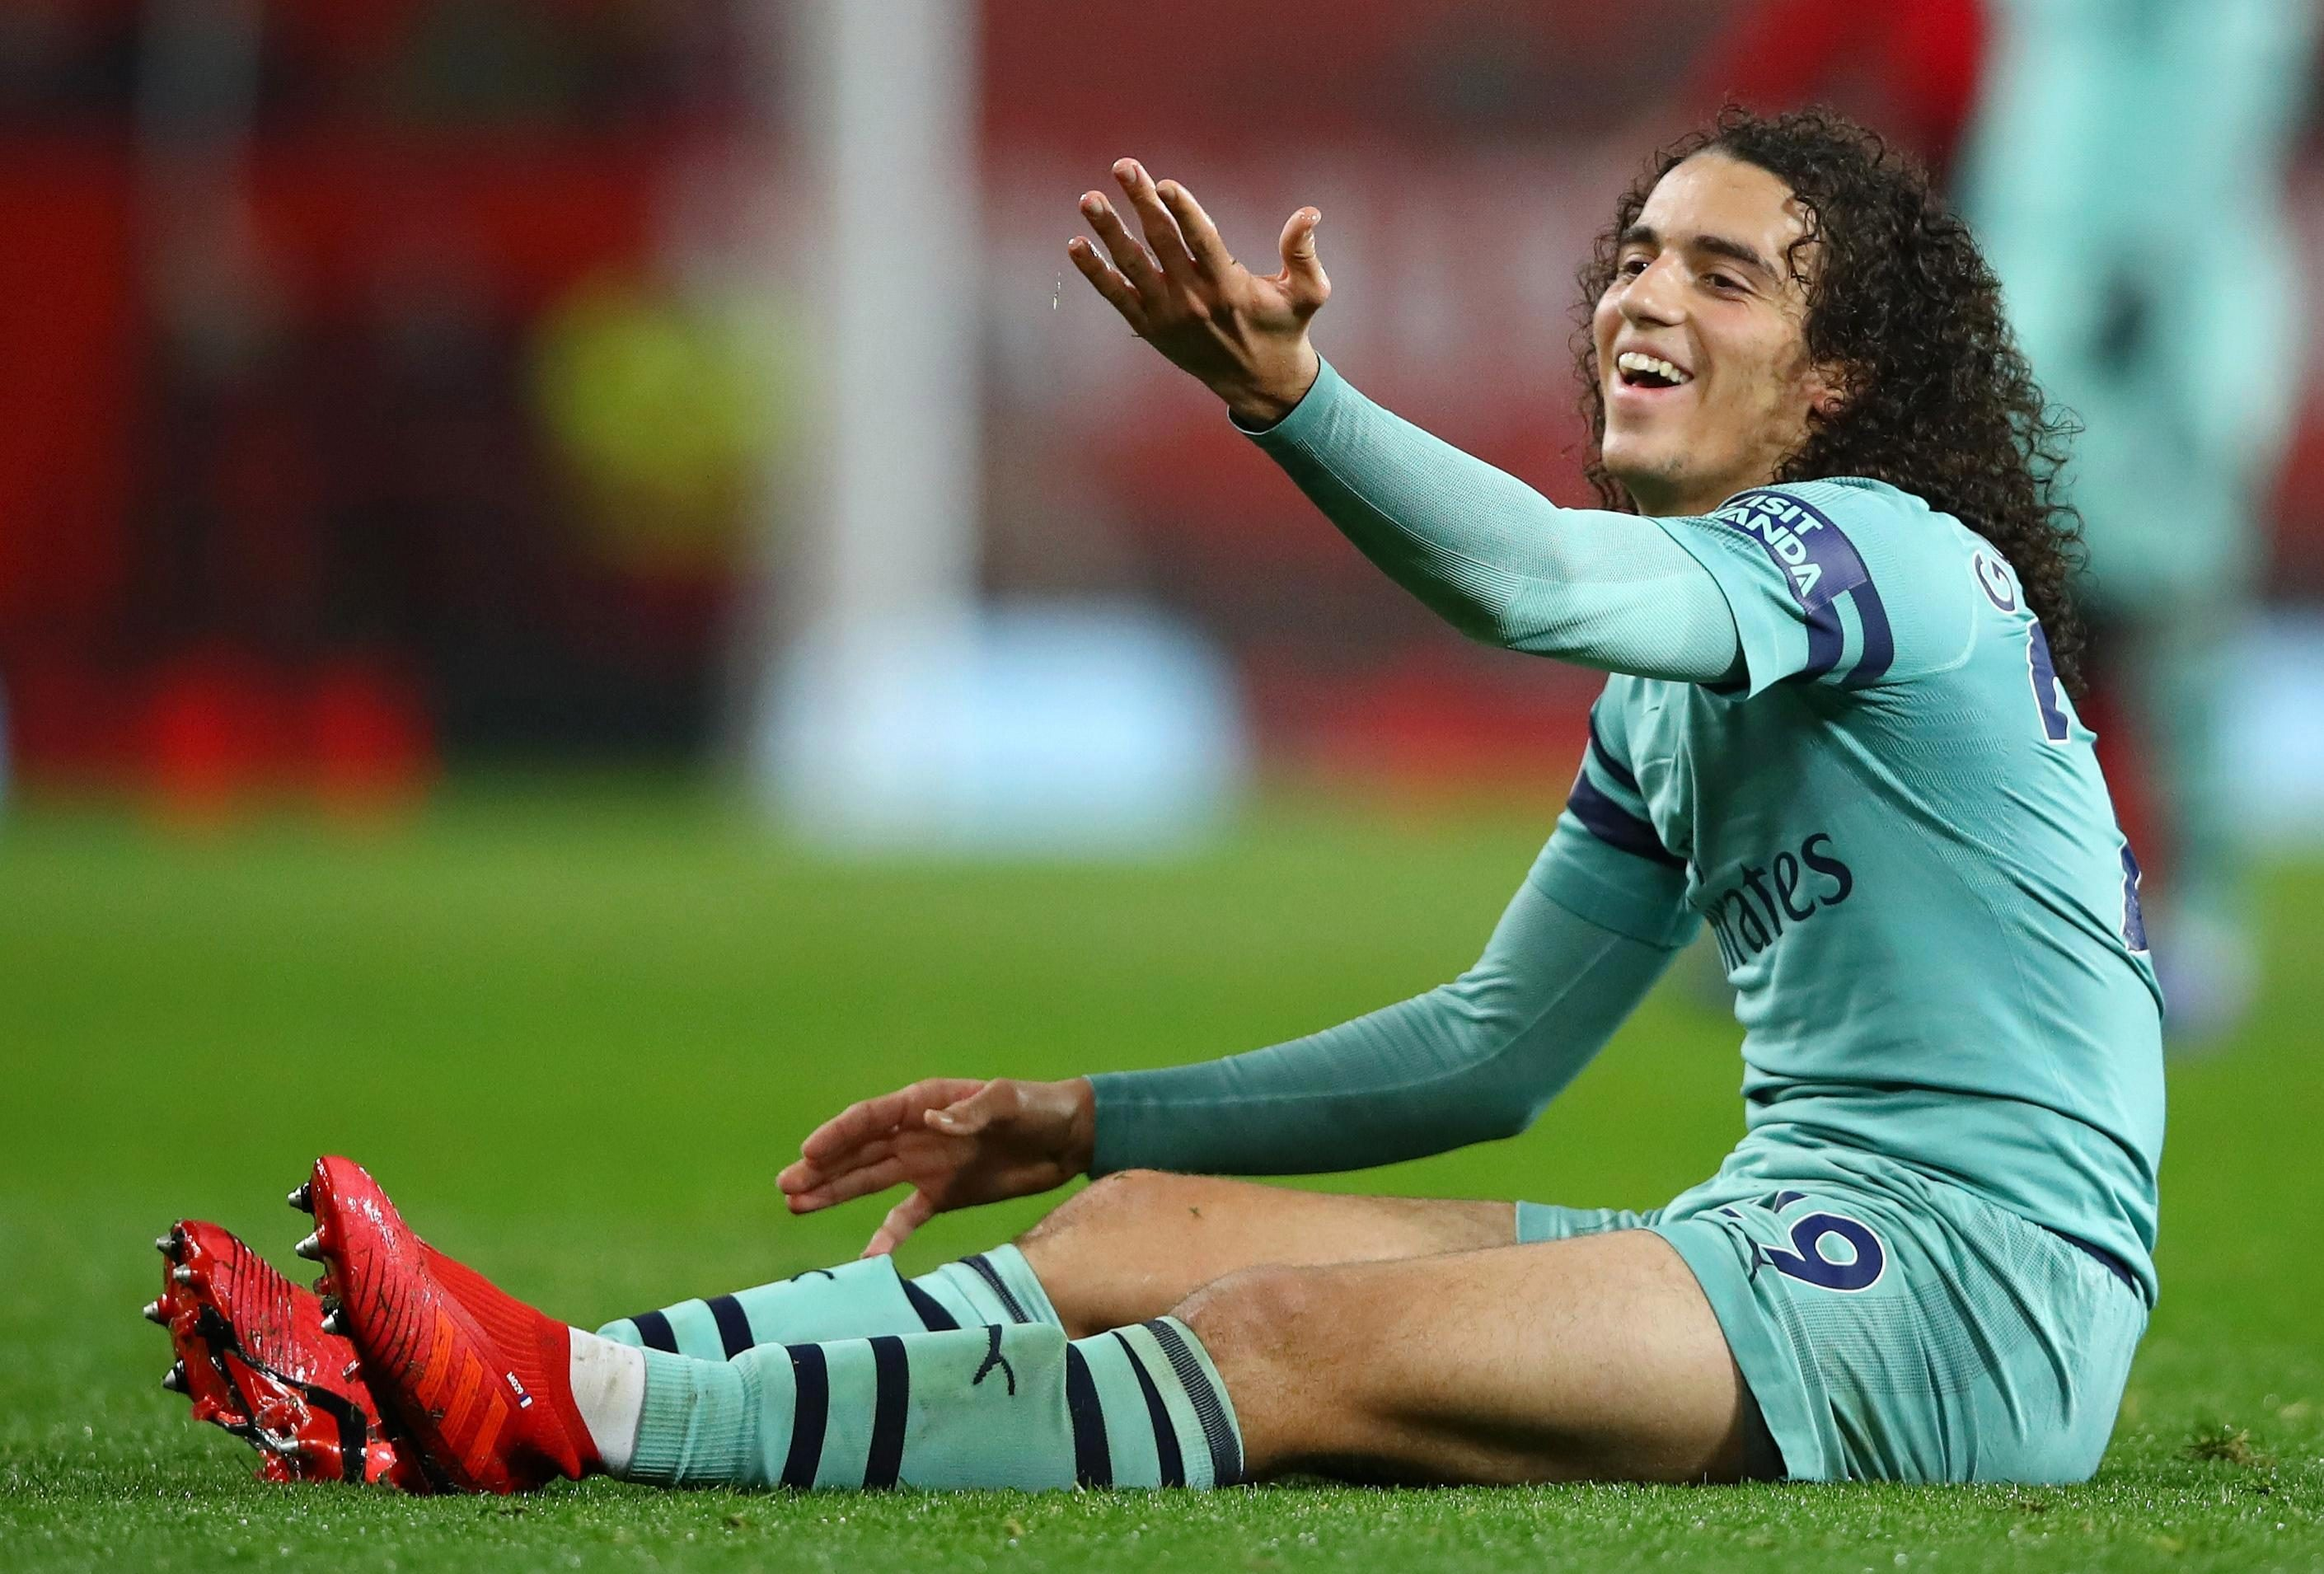 He suggested it was wrong to single out Matteo Guendouzi though as the youngster was also involved